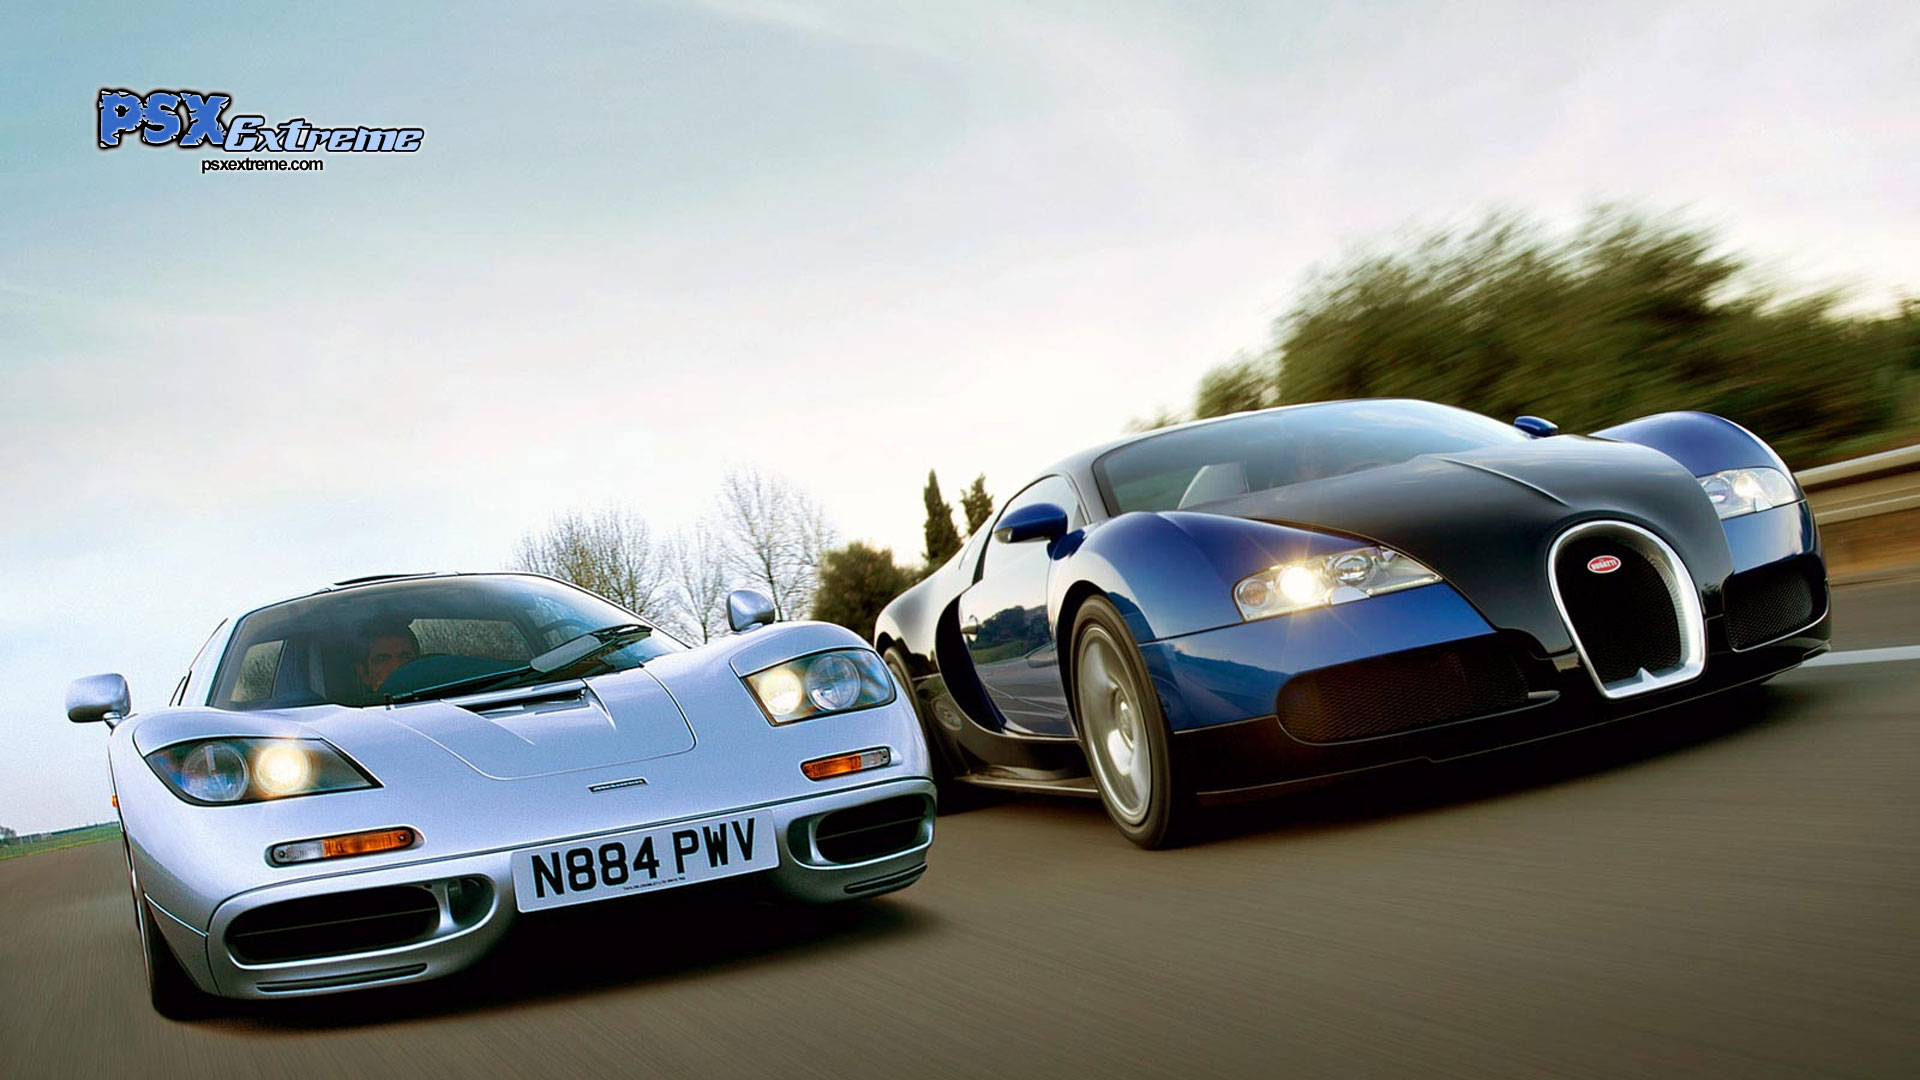 Mclaren F1 VS Veyron Wallpapers